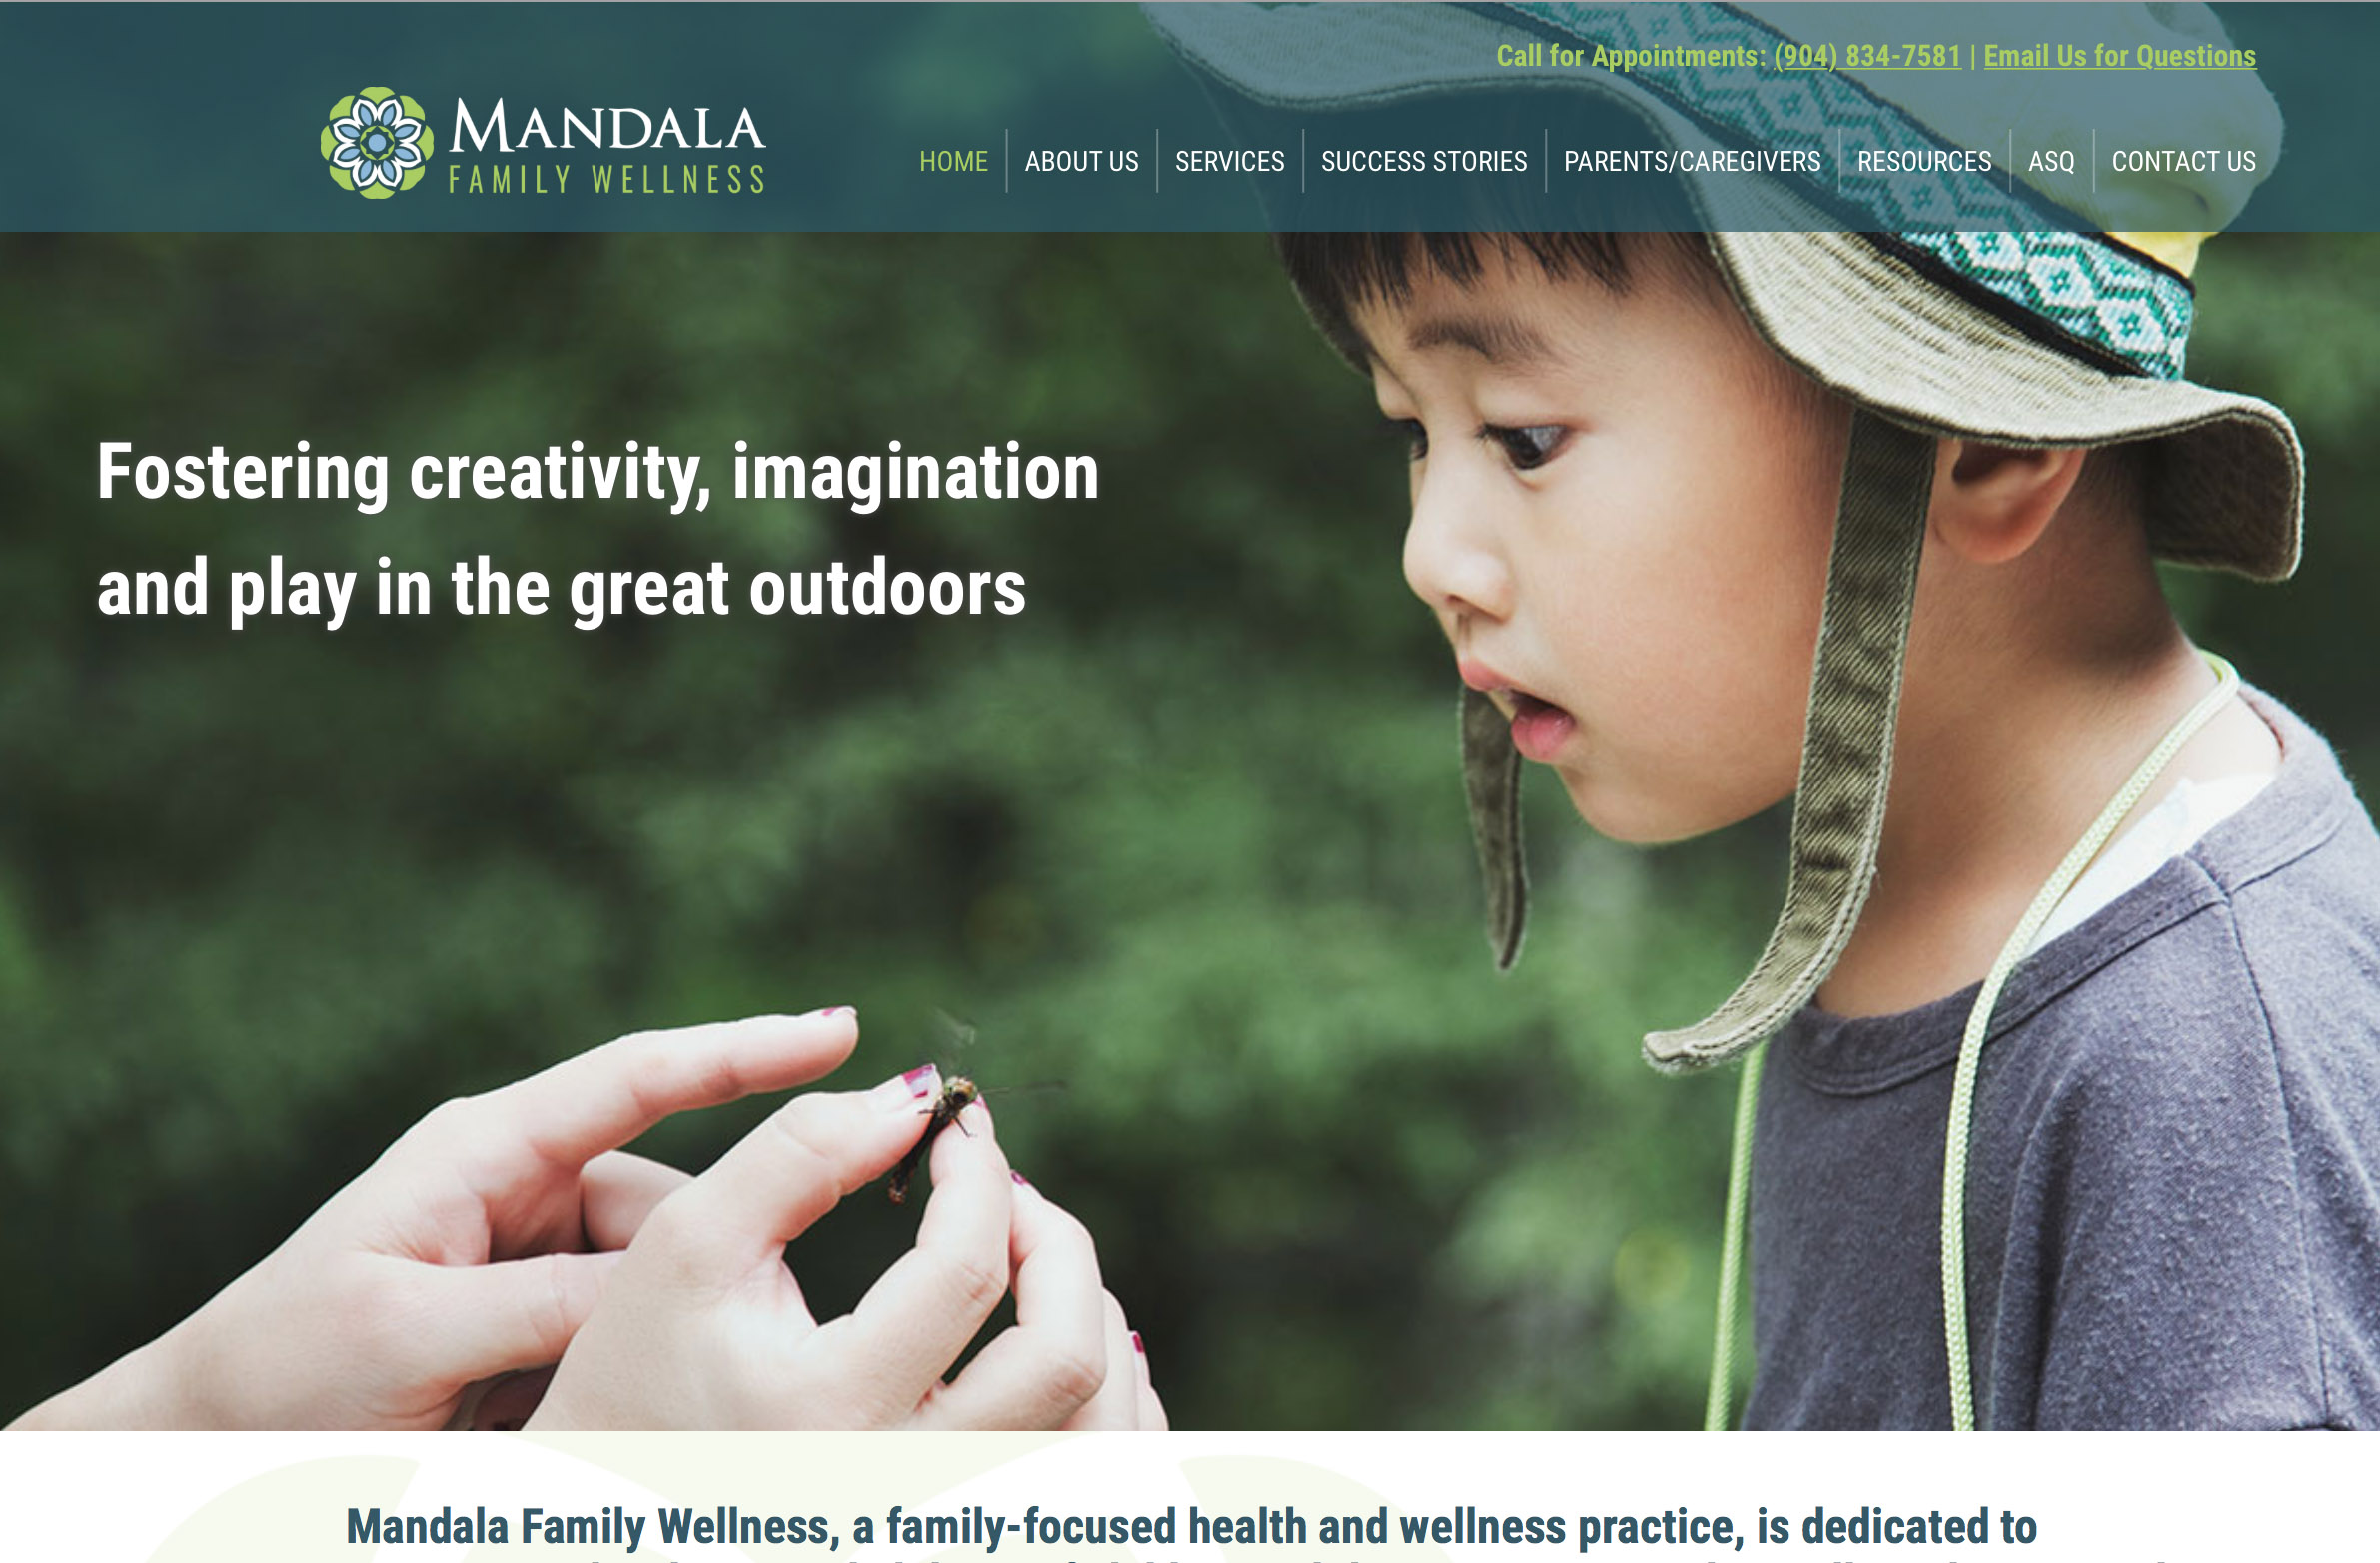 mandala family wellness website design